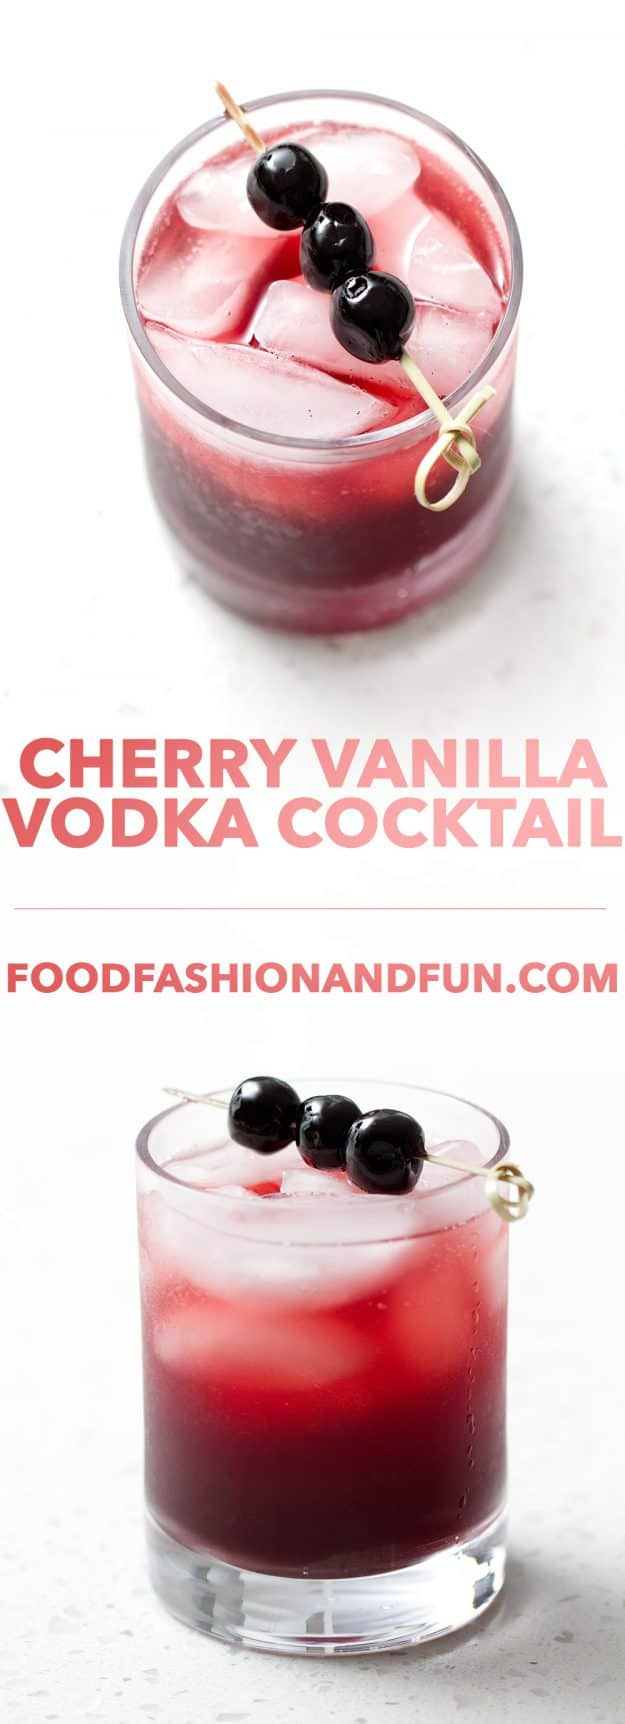 This fragrant Cherry Vanilla Vodka Cocktail is all about the Cherry Vanilla Syrup. It's a simple recipe with tons of flavor that's sure to impress your friends at your next cocktail party or happy hour.